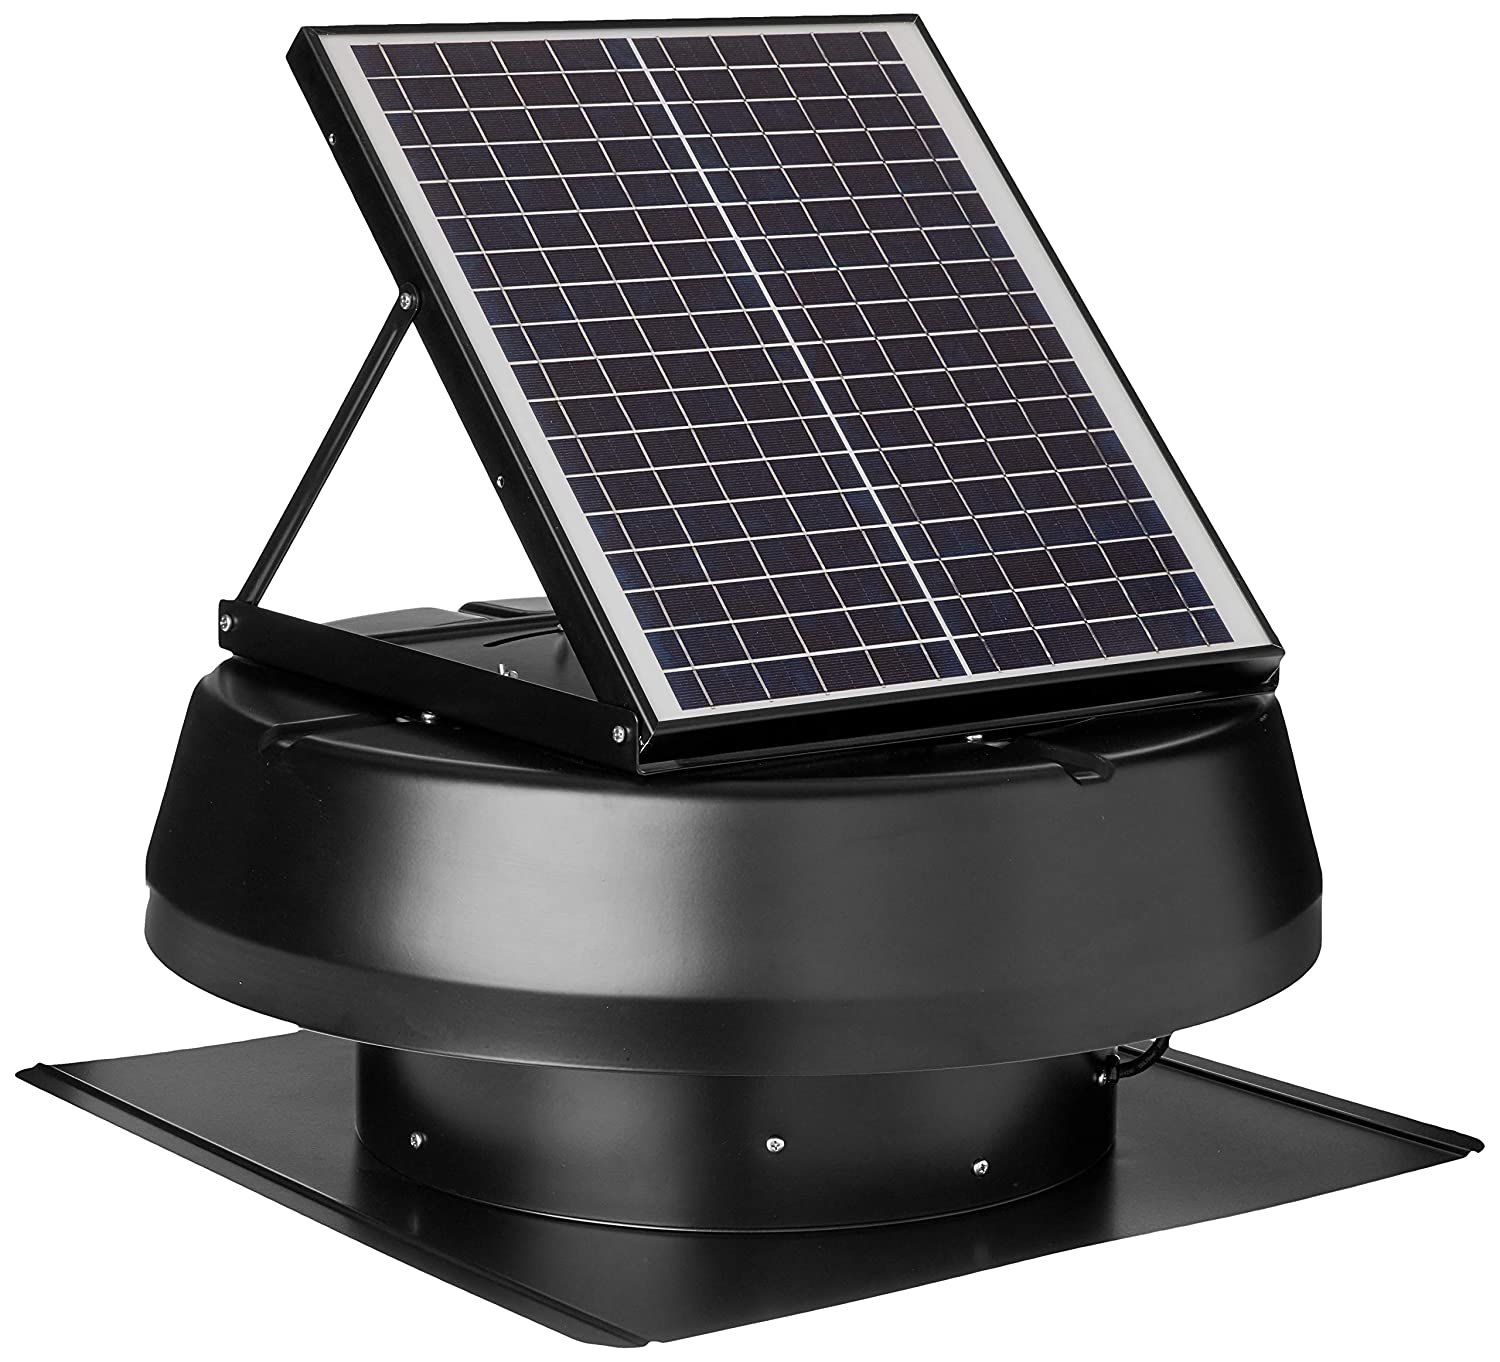 iLIVING HYBRID Ready Smart Exhaust Solar Roof Fan for barns